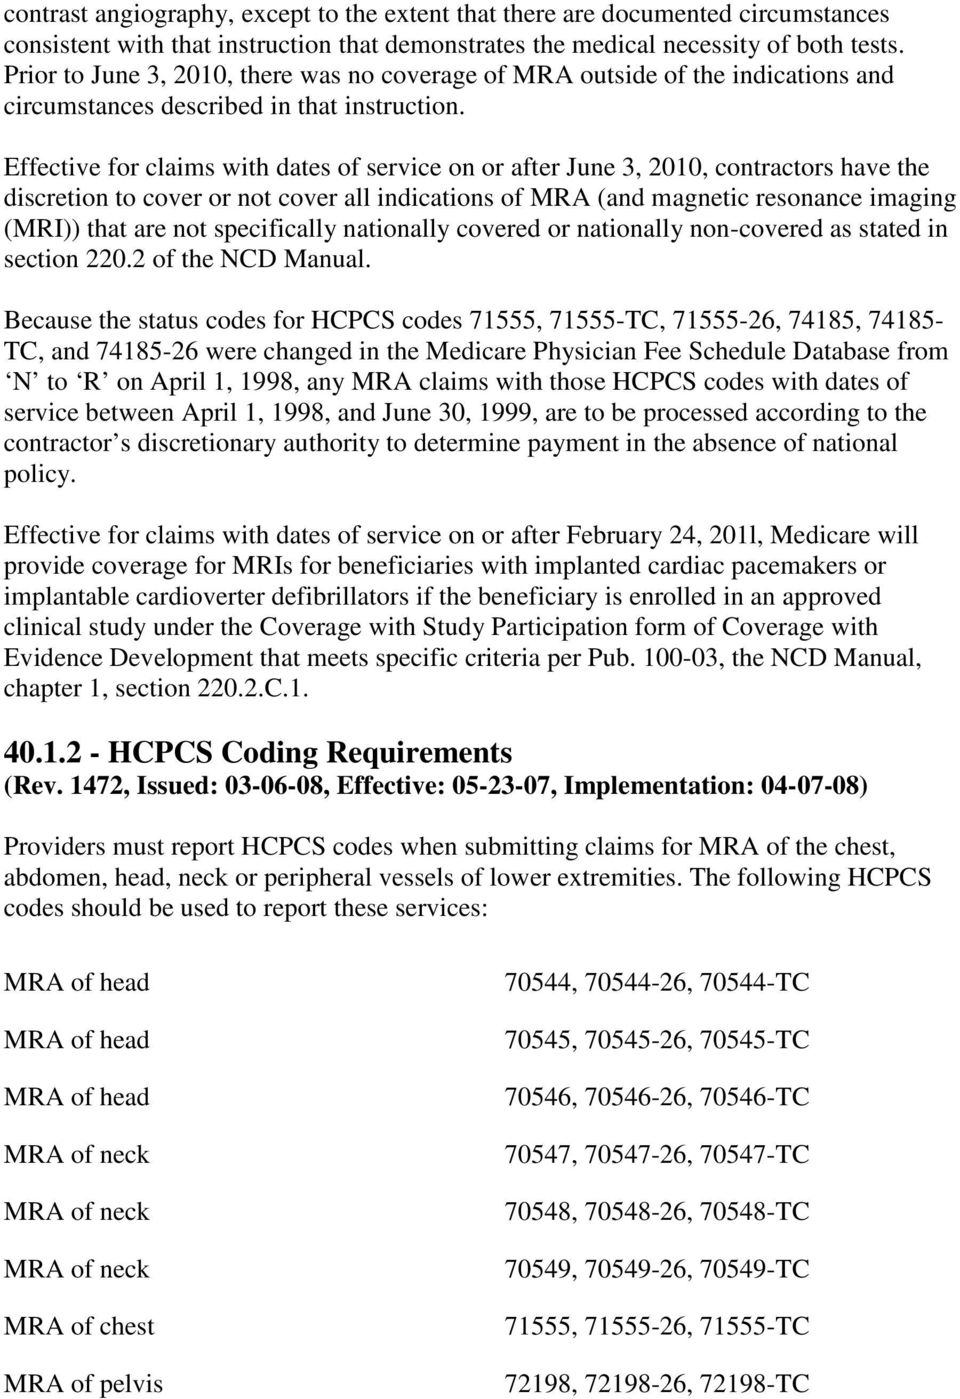 Effective for claims with dates of service on or after June 3, 2010,  contractors